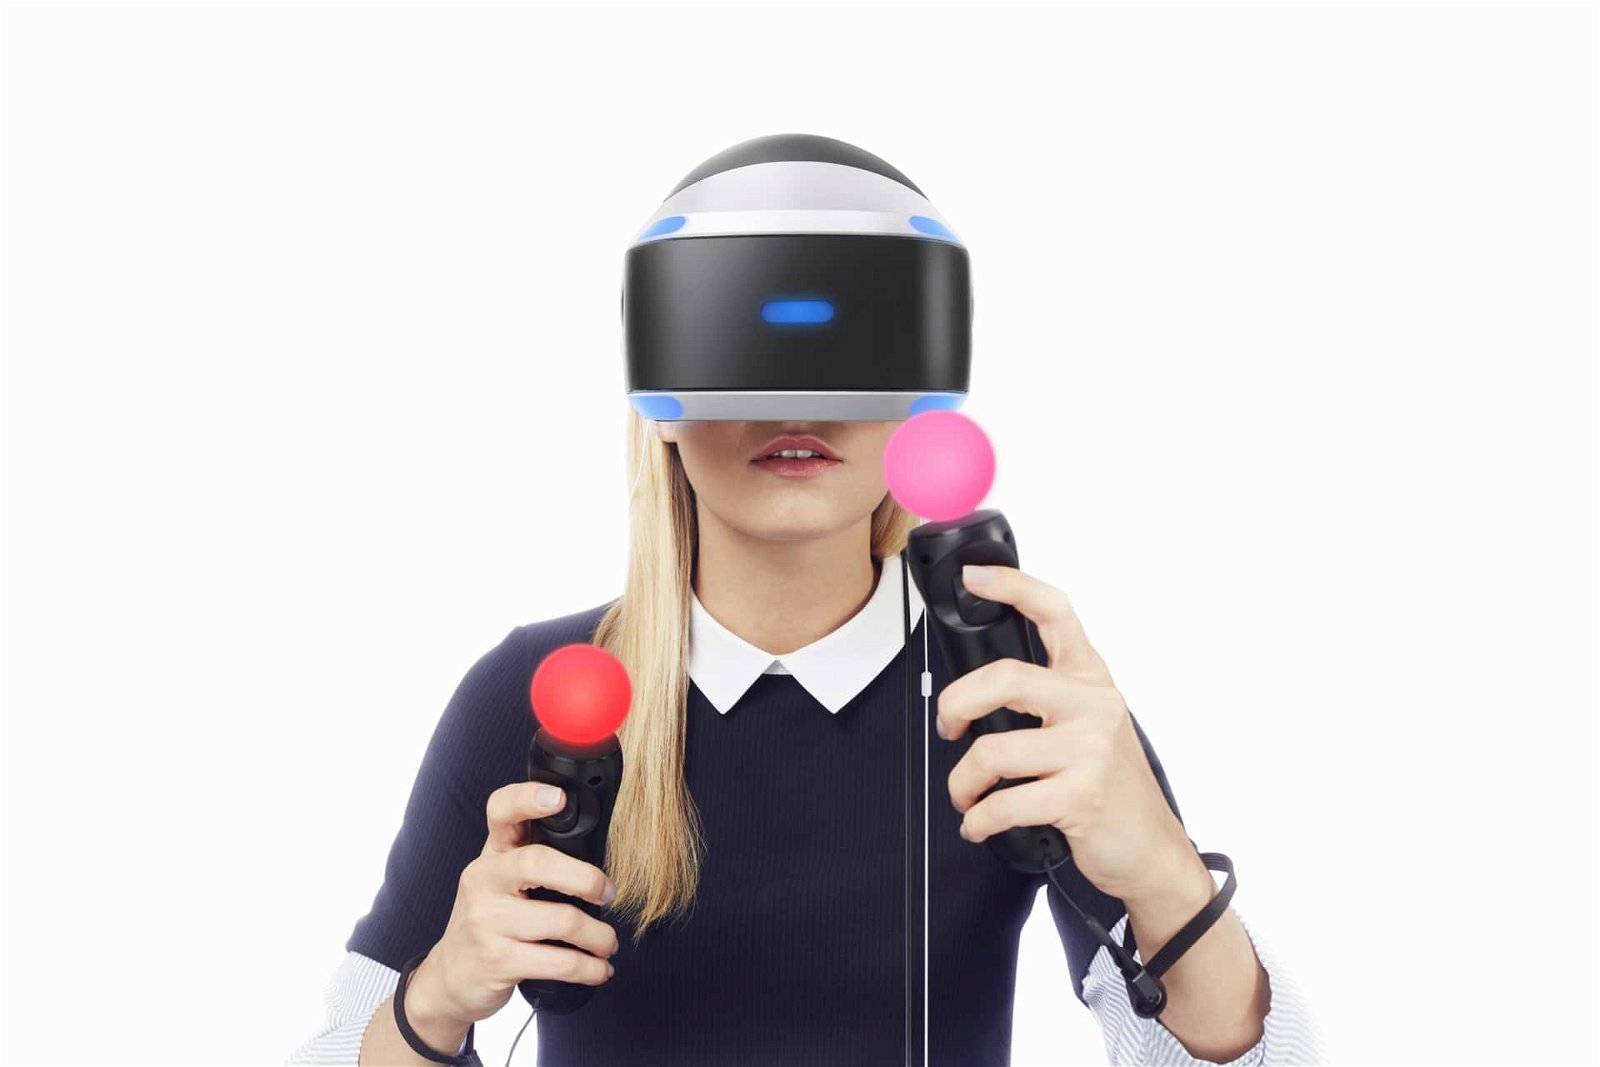 PlayStation VR Set To Receive Refreshed Model With HDR Pass-through